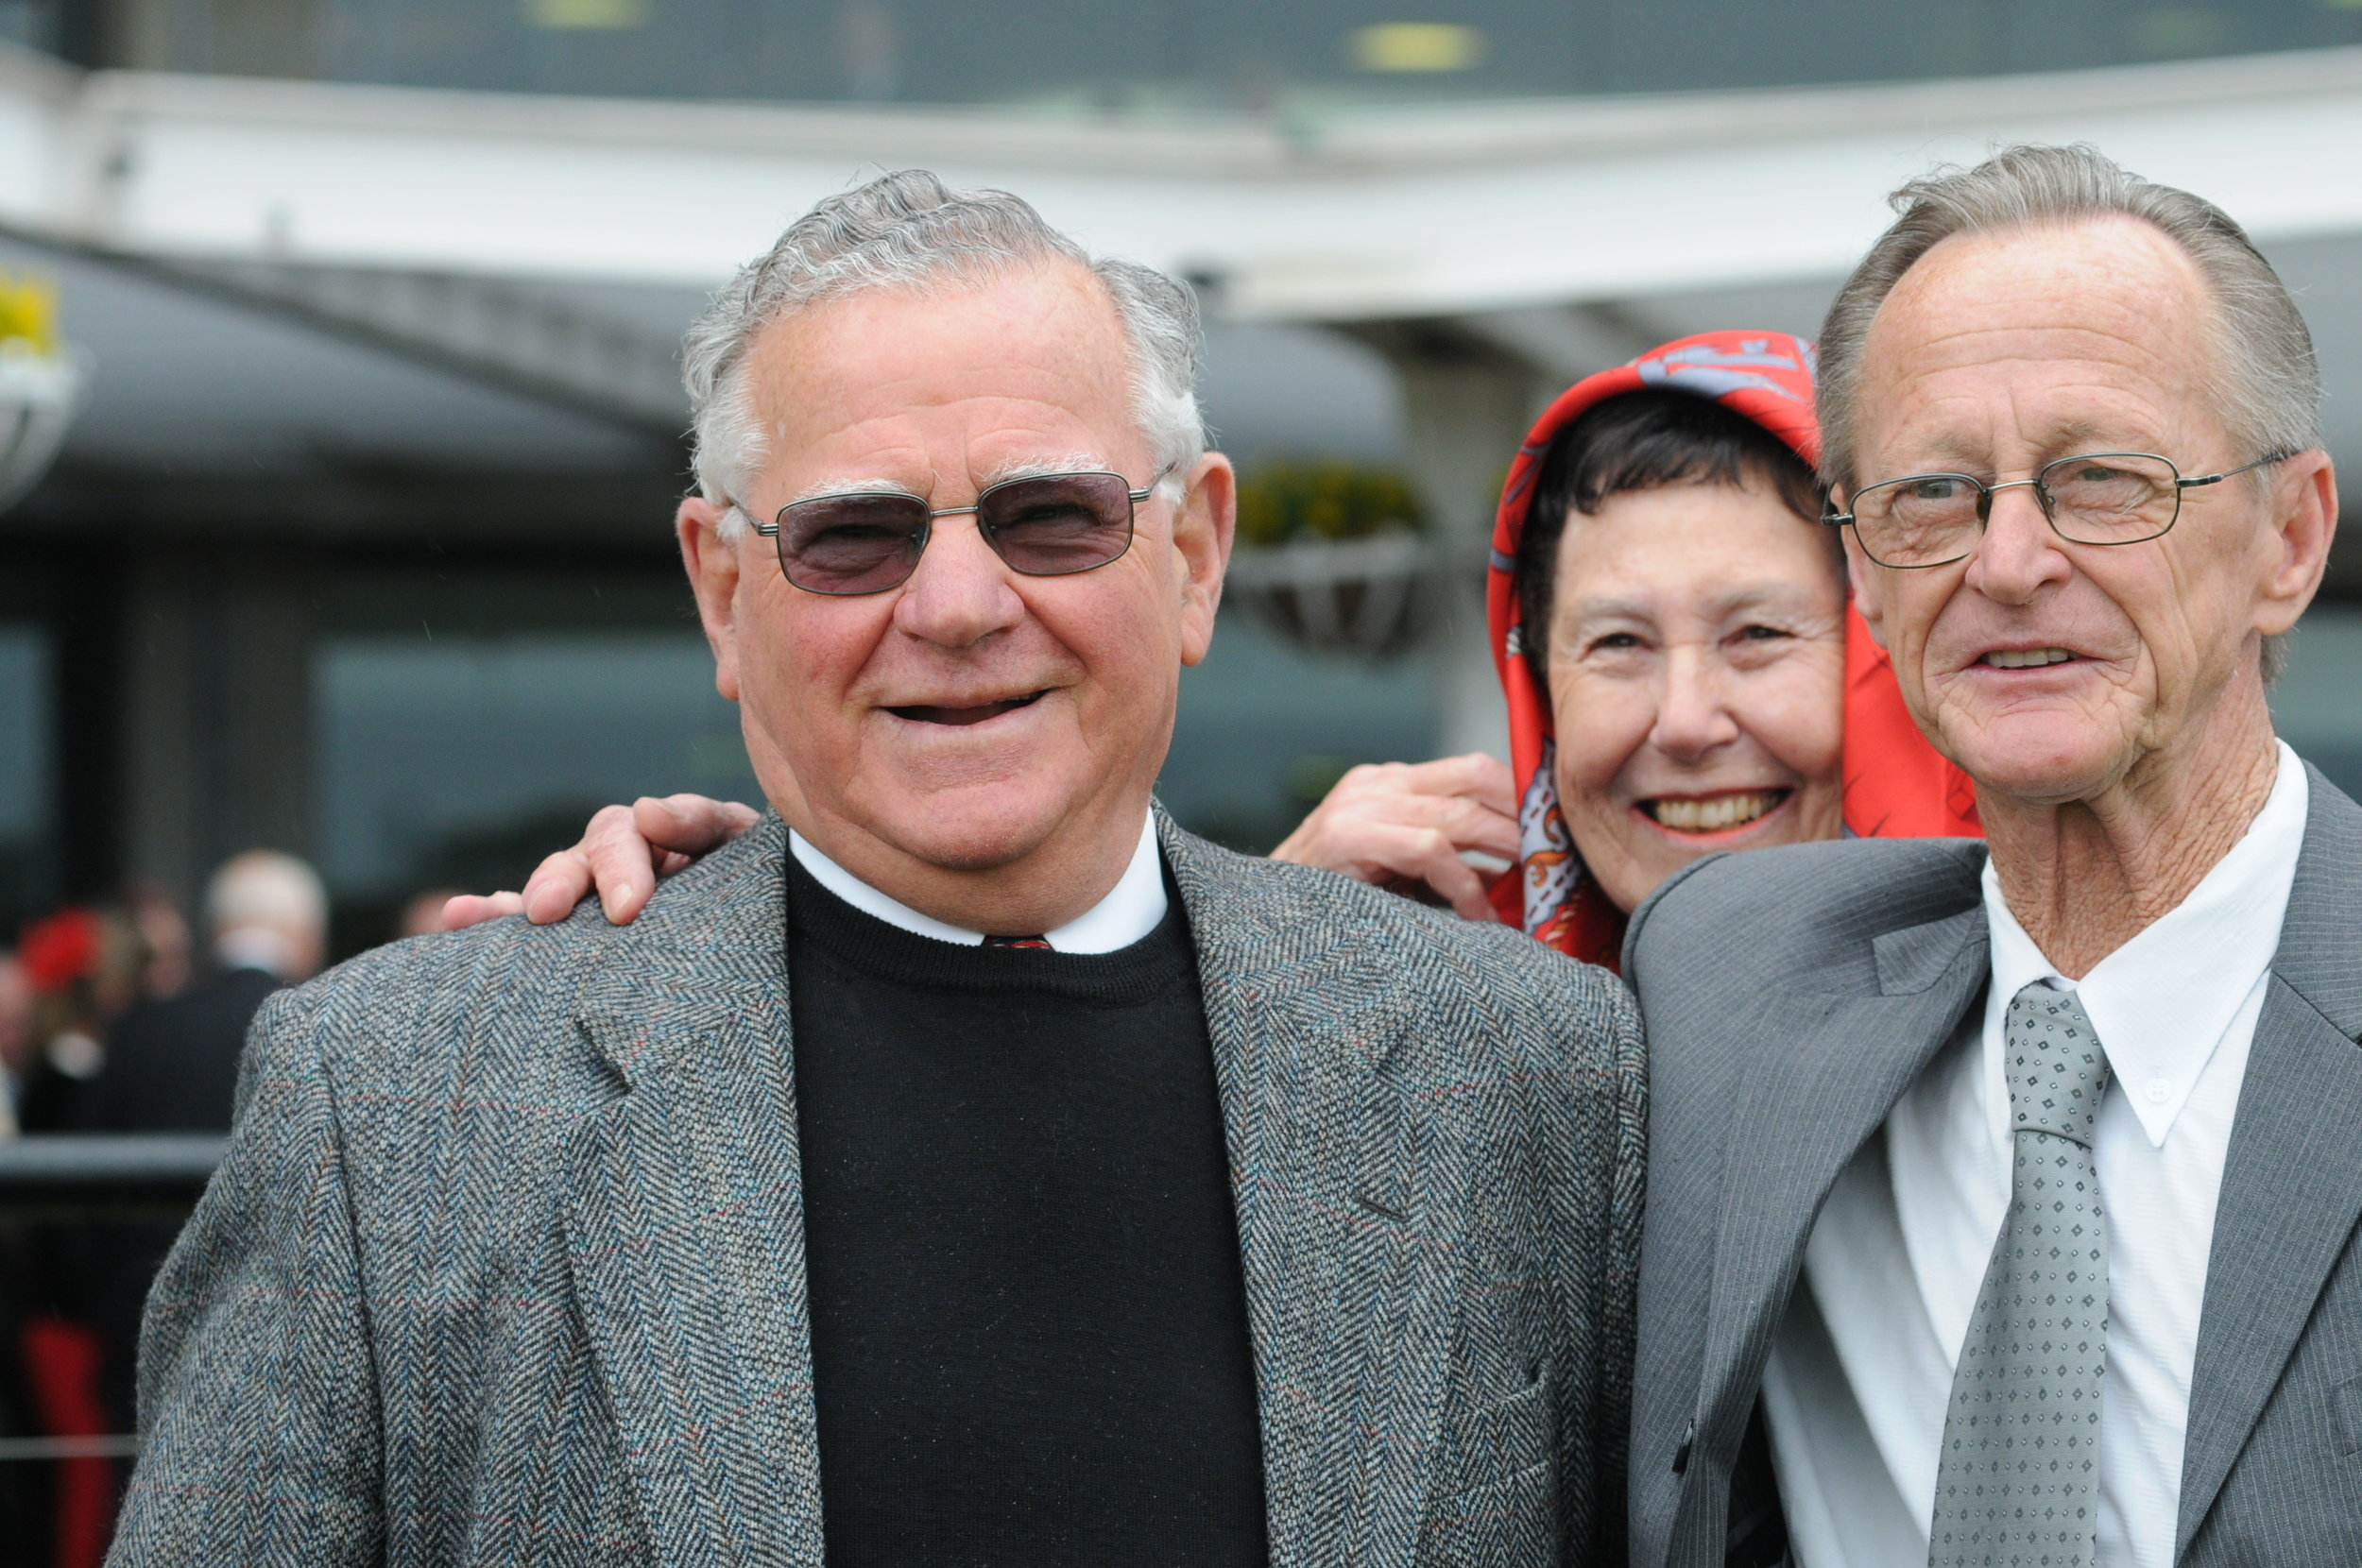 Image courtesy Steve Hart Photograhics - Bill Prain and Fred Peisah - great partners in racing and in life.